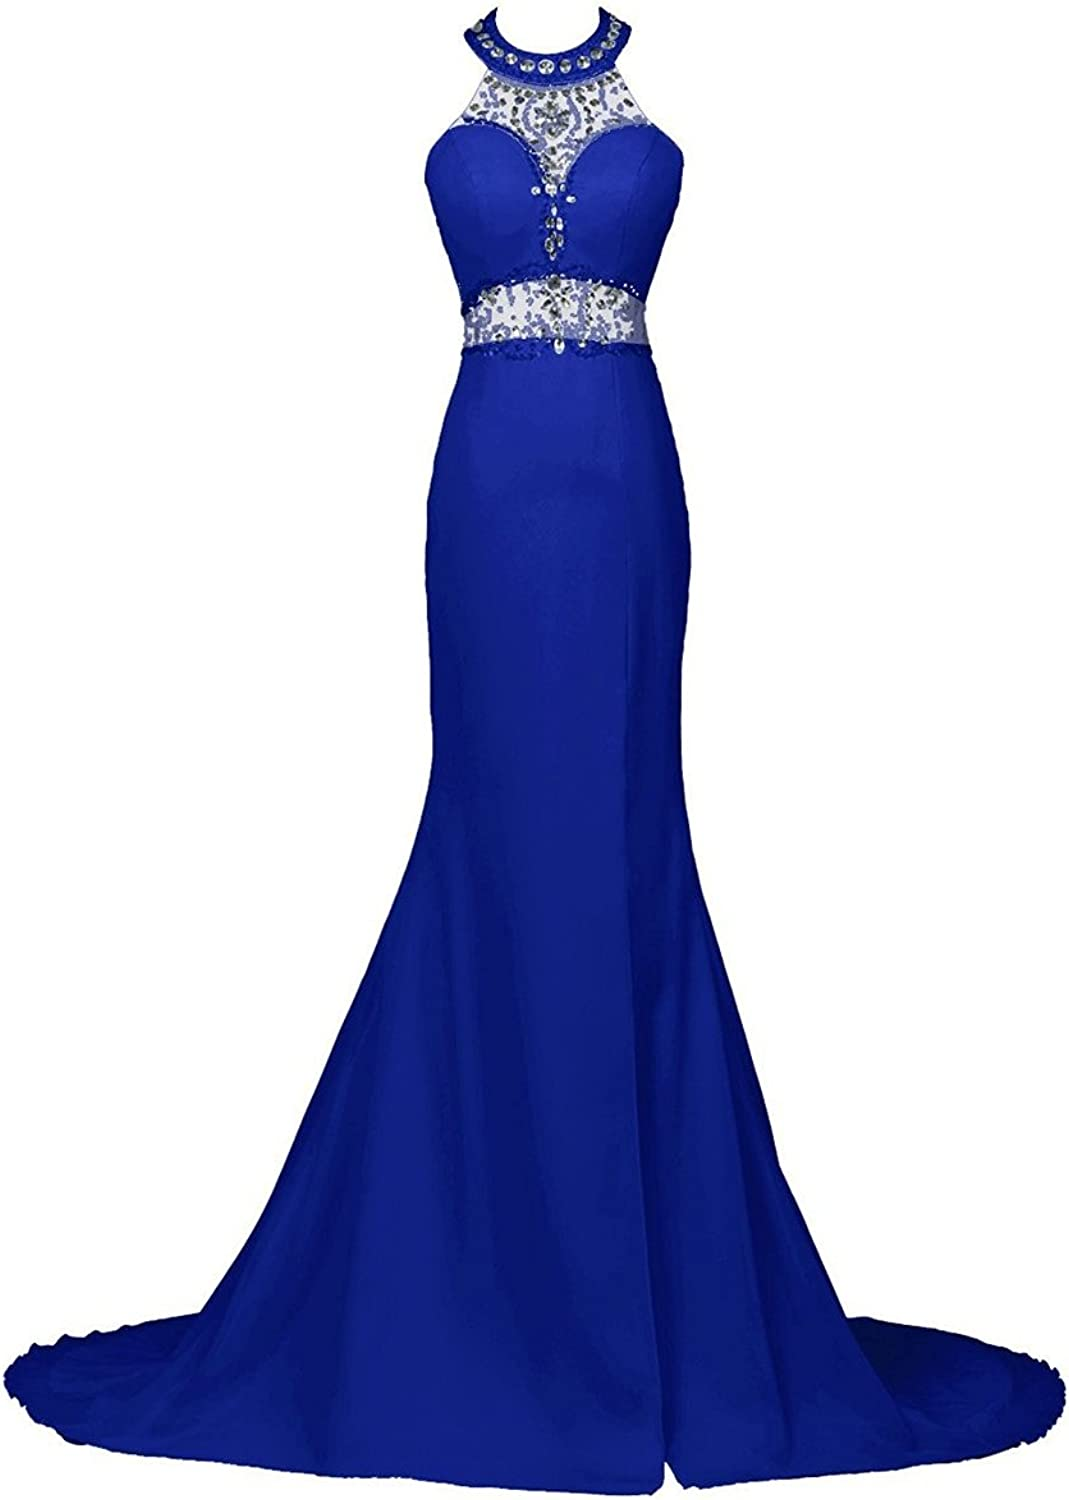 JudyBridal Long Mermaid Prom Dress Beaded Halter Evening Gowns with Slit